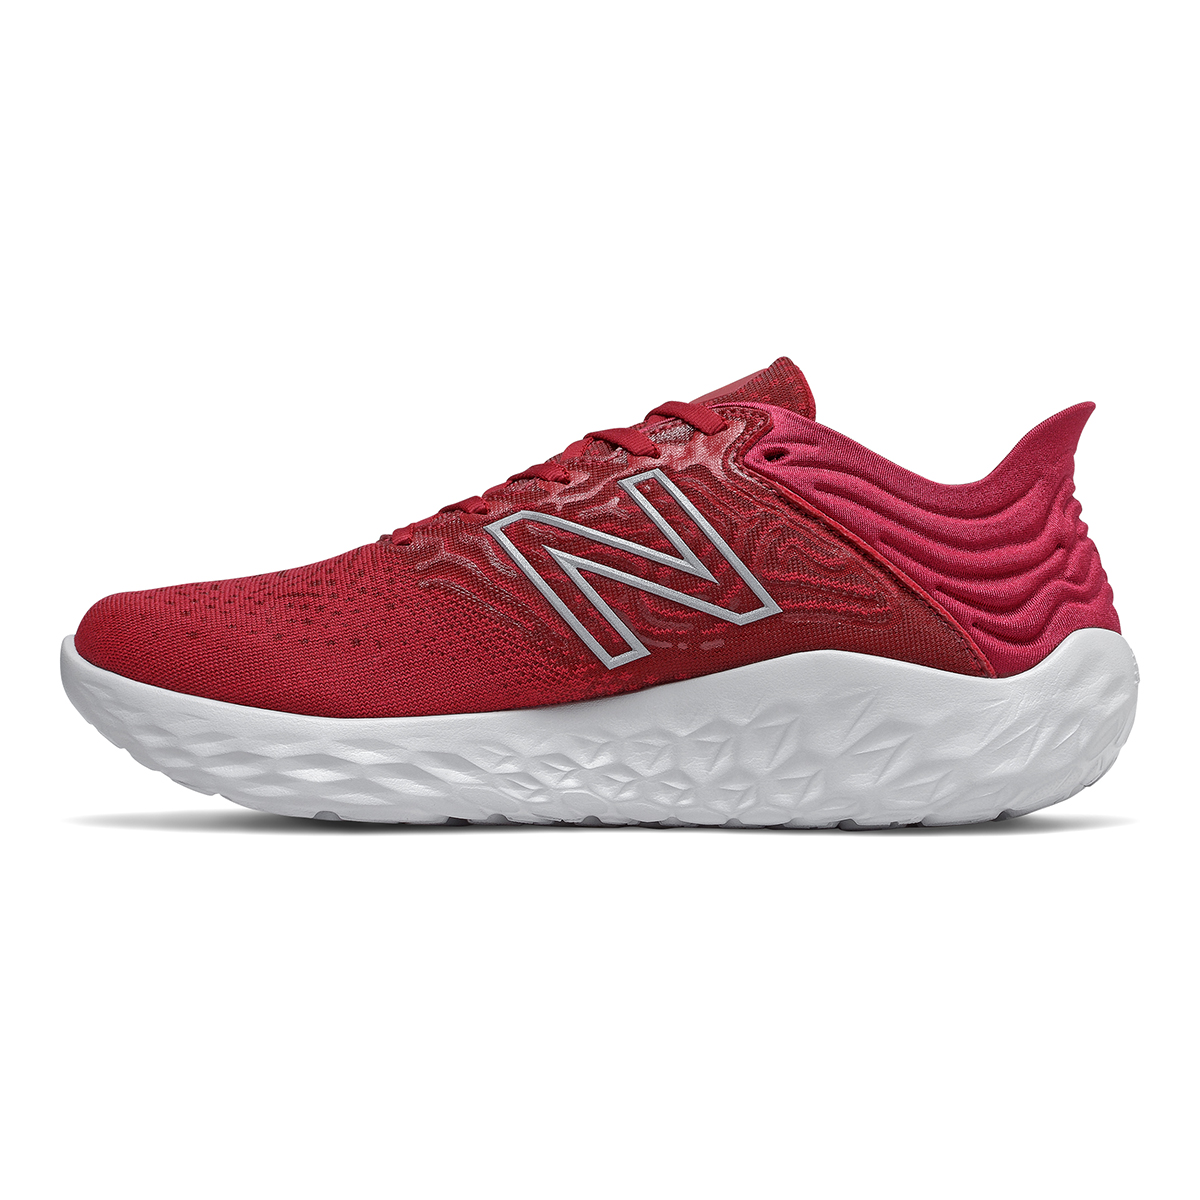 Men's New Balance Beacon V3 Running Shoe, , large, image 2